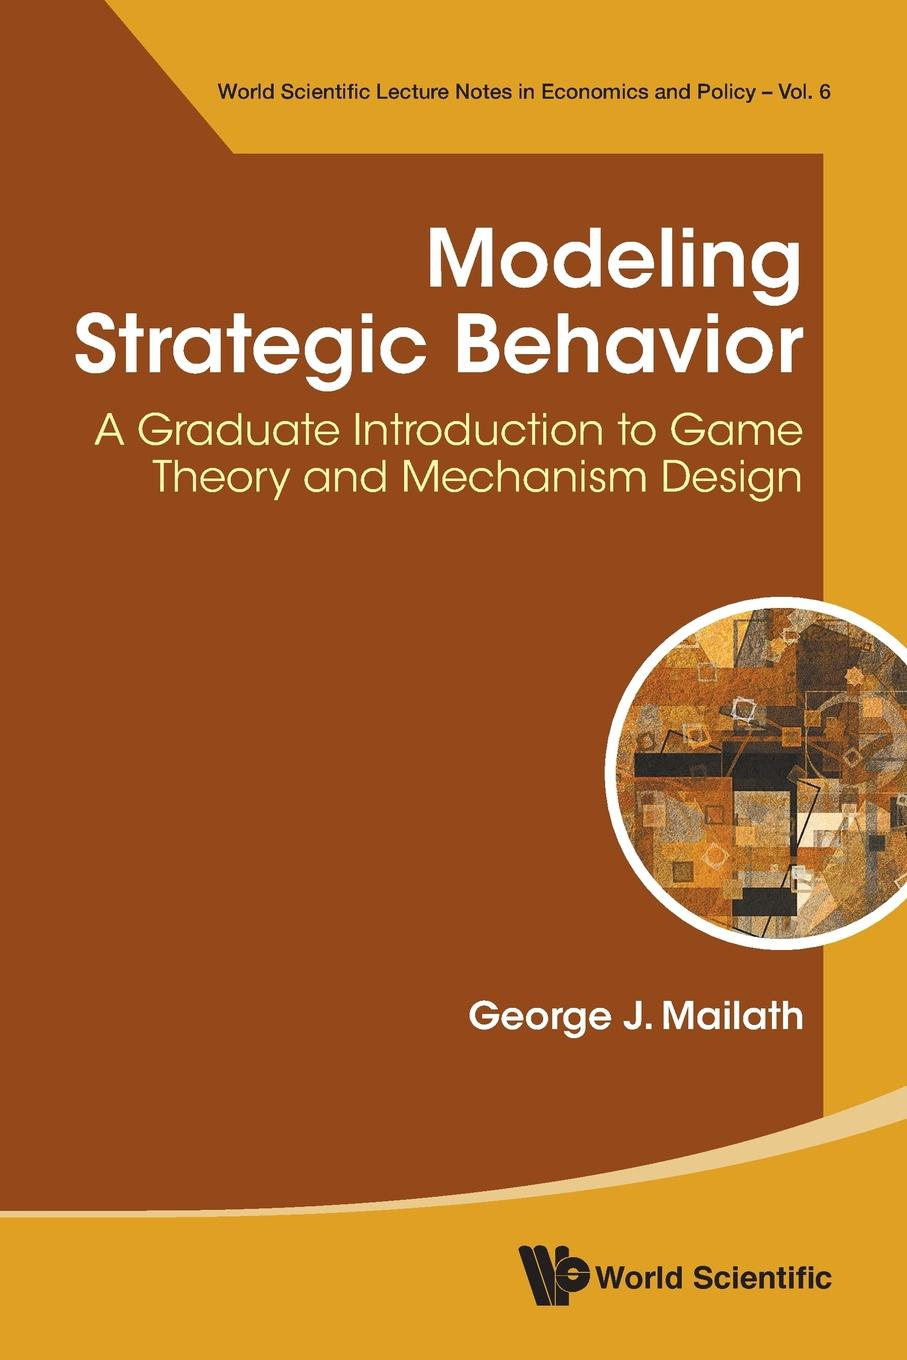 George J Mailath Modeling Strategic Behavior. A Graduate Introduction to Game Theory and Mechanism Design цена и фото